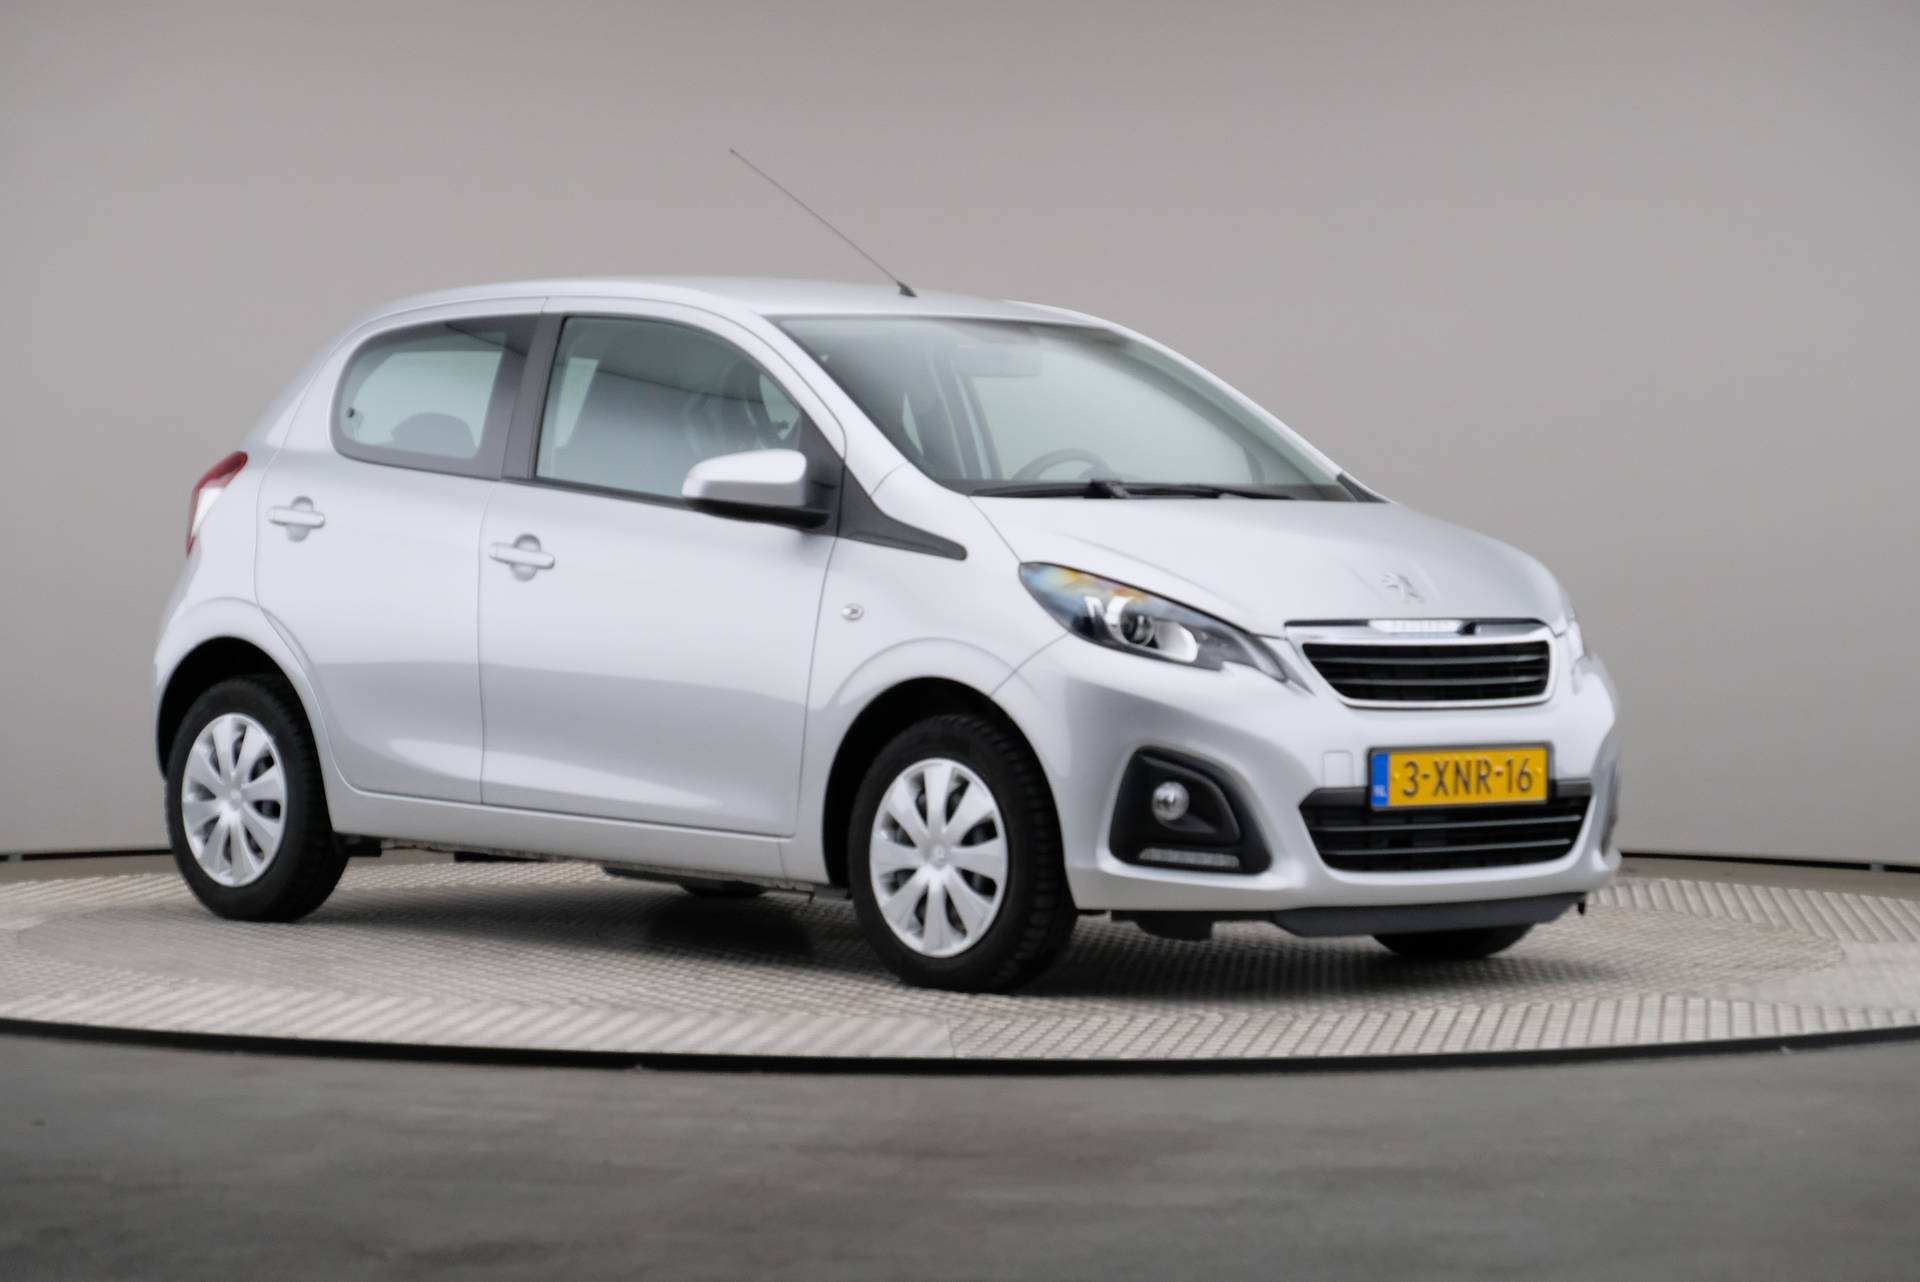 Peugeot 108 1.0 e-VTi Blue Lease, Airconditioning, 360-image28